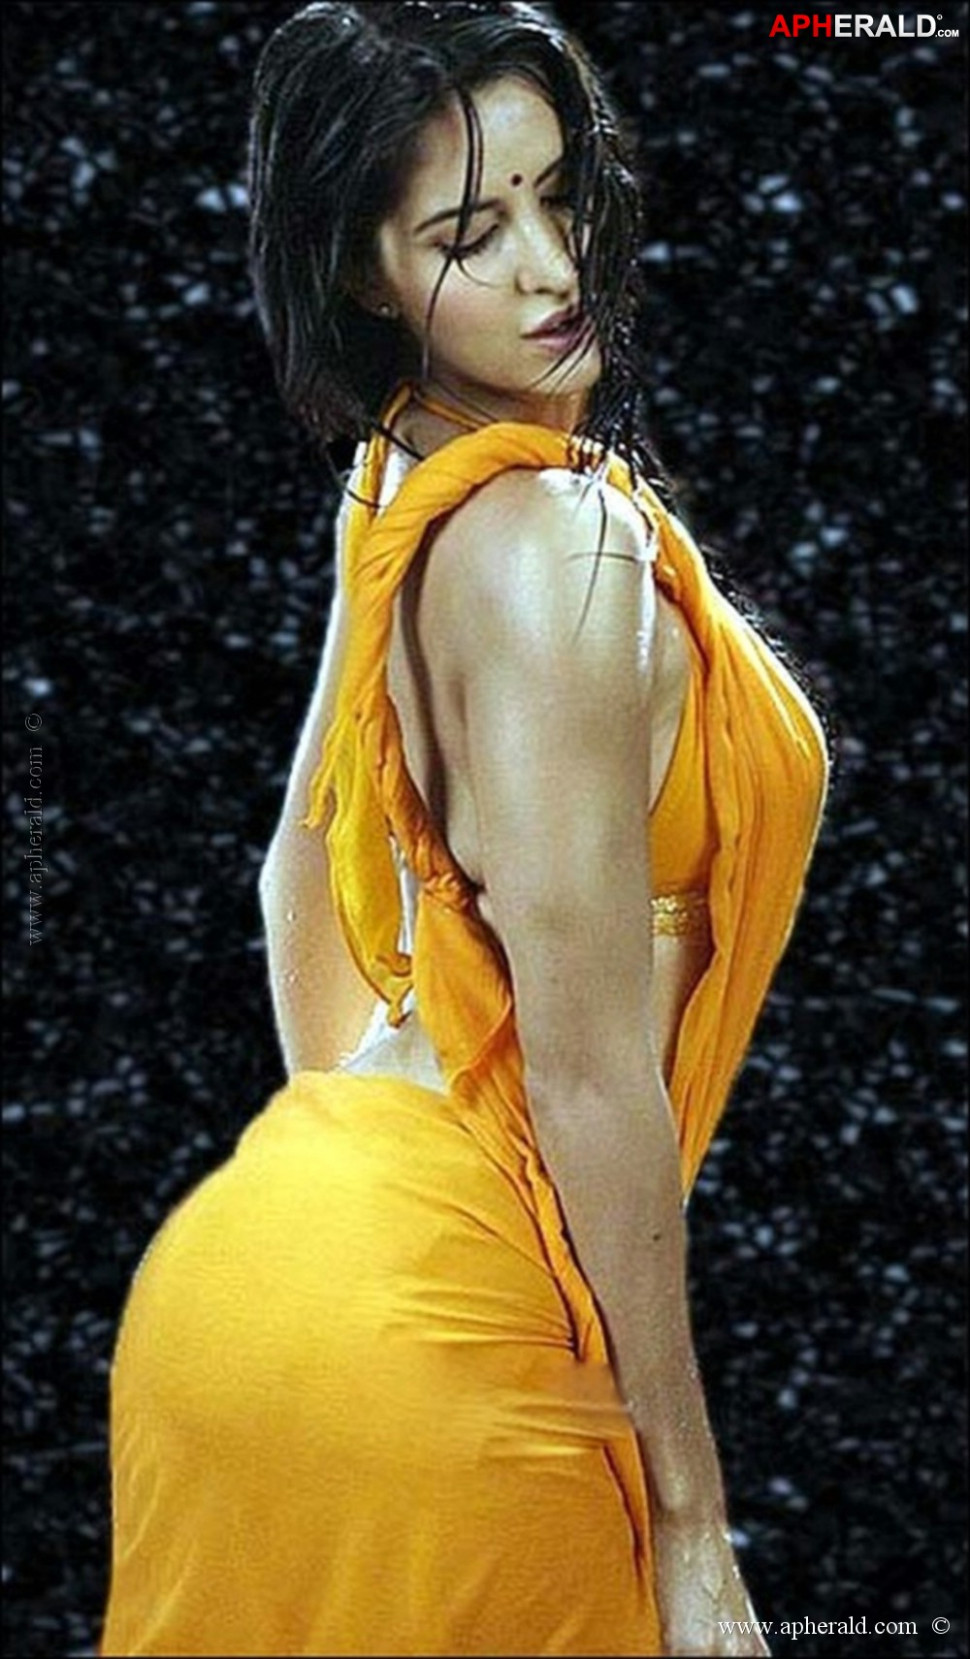 Bollywood Actress Hot Saree Pics - bollywood saree gallery